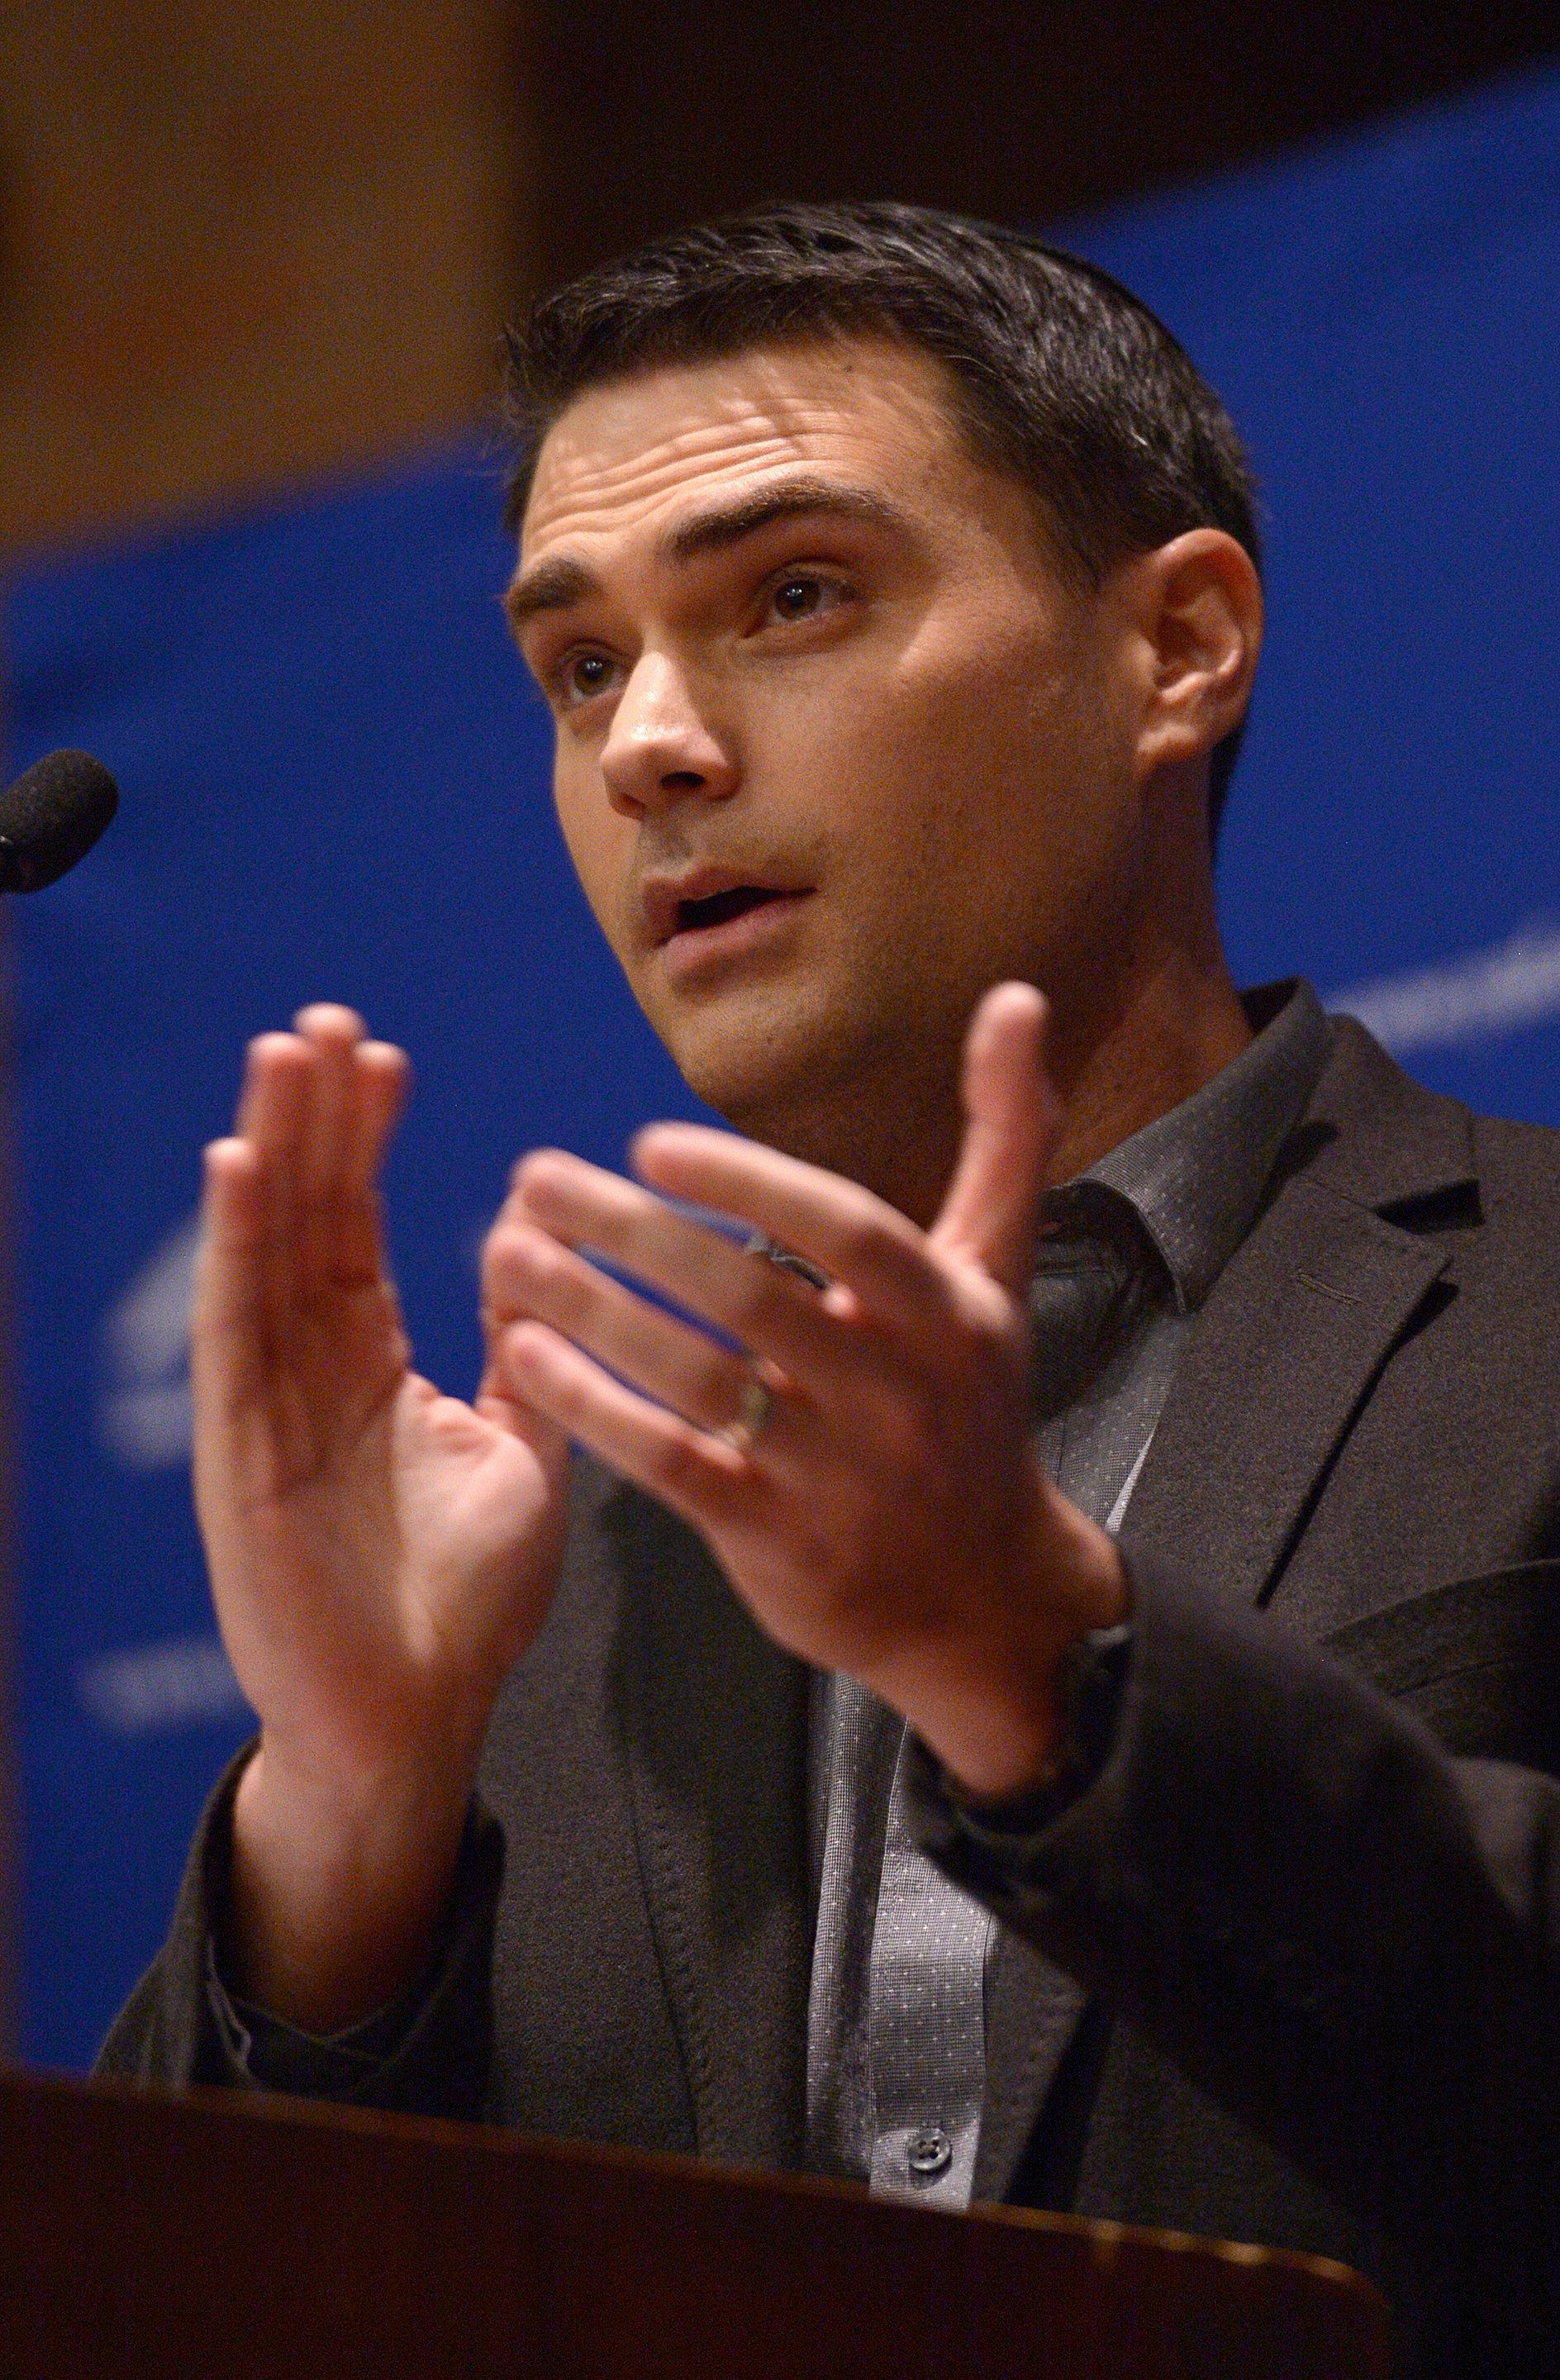 Westlake Legal Group 5c4205d63b0000860068906d You Won't Believe What Ben Shapiro Thinks About Baby Hitler